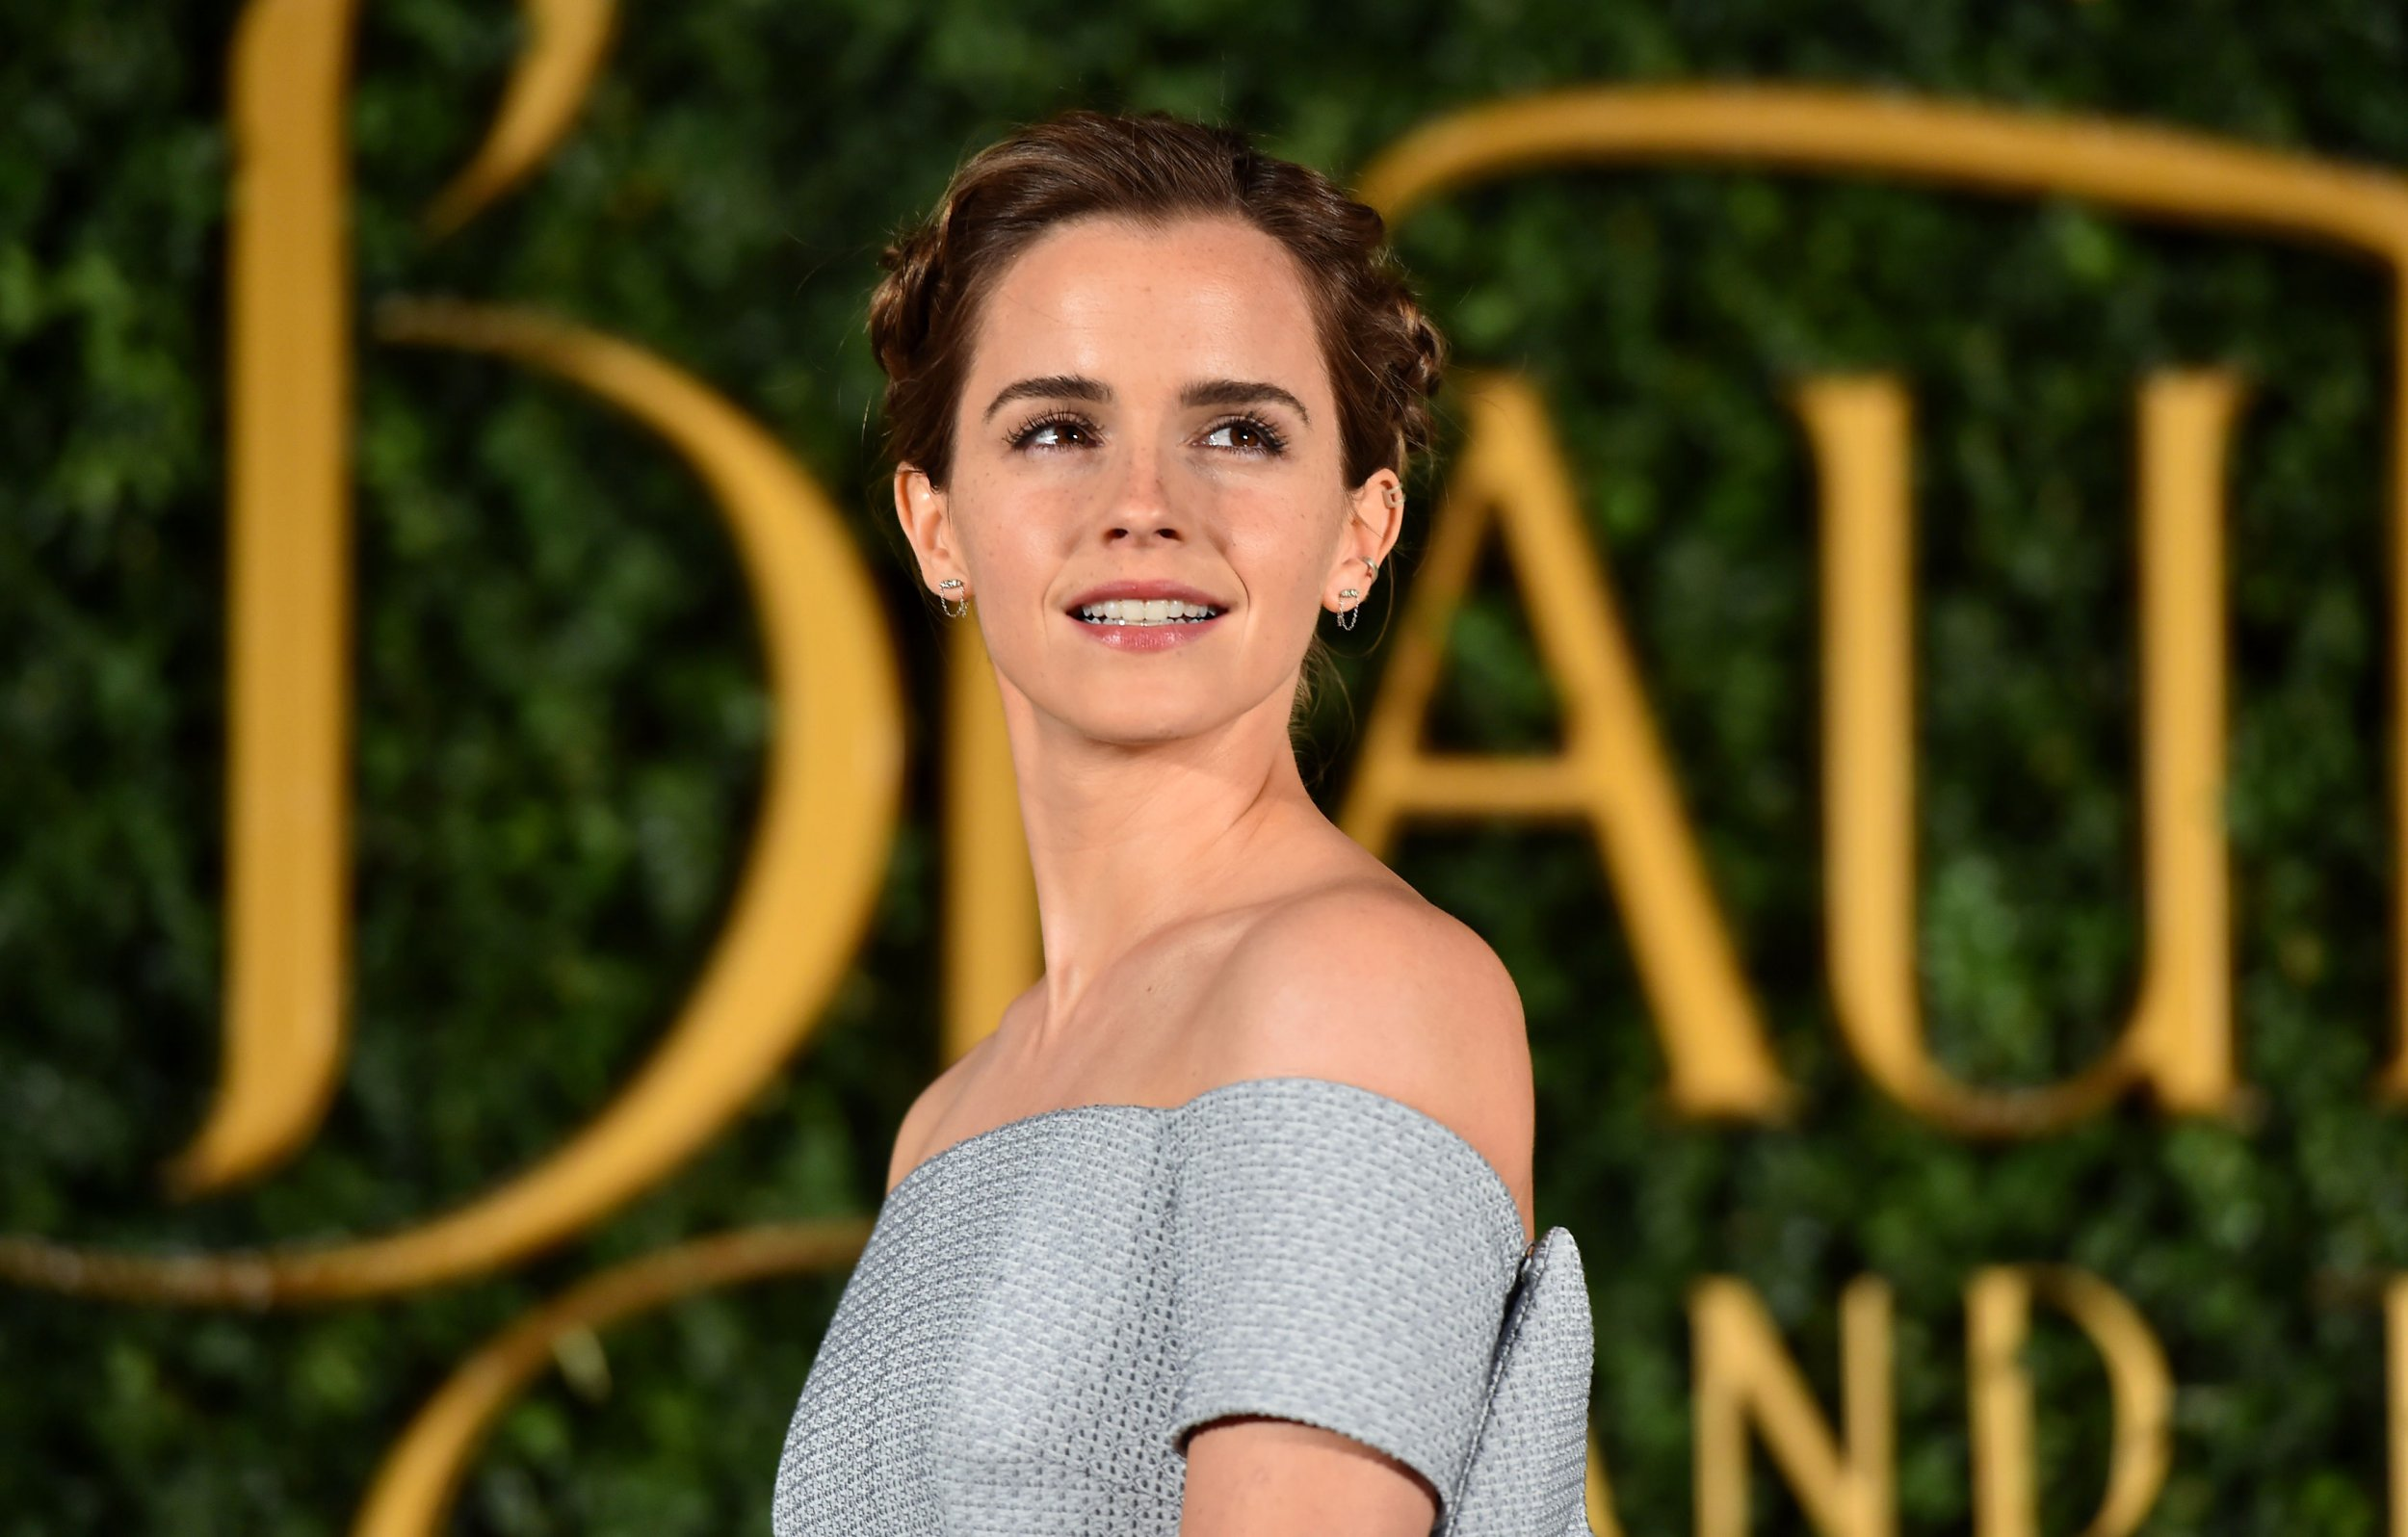 Emma Watson attending the Beauty and the Beast launch event at Spencer House, London. PRESS ASSOCIATION Photo. Picture date: Thursday February 23, 2017. See PA story SHOWBIZ Beauty. Photo credit should read: Matt Crossick/PA Wire